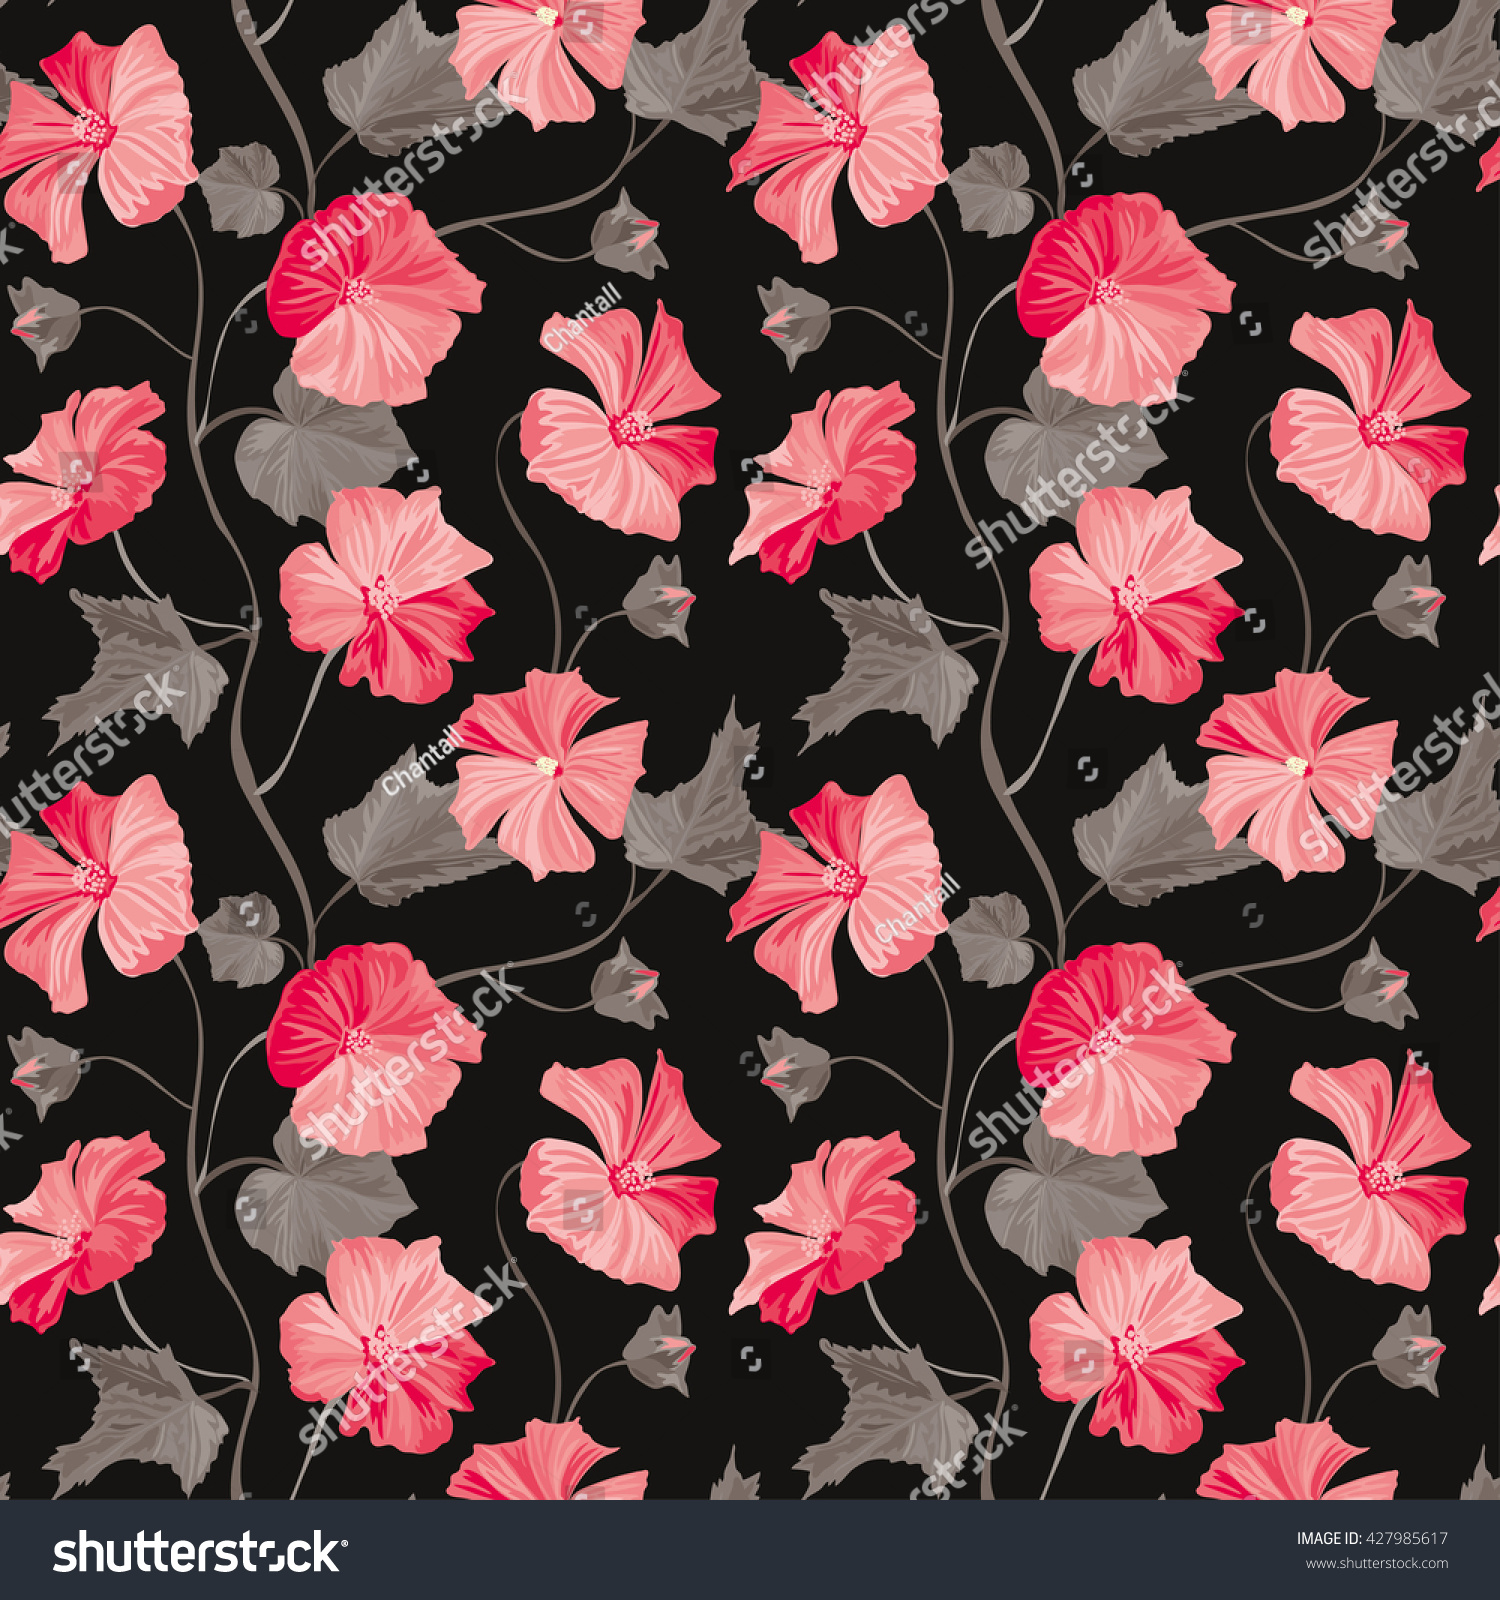 Elegant Seamless Pattern With Hand Drawn Decorative Hibiscus Flowers